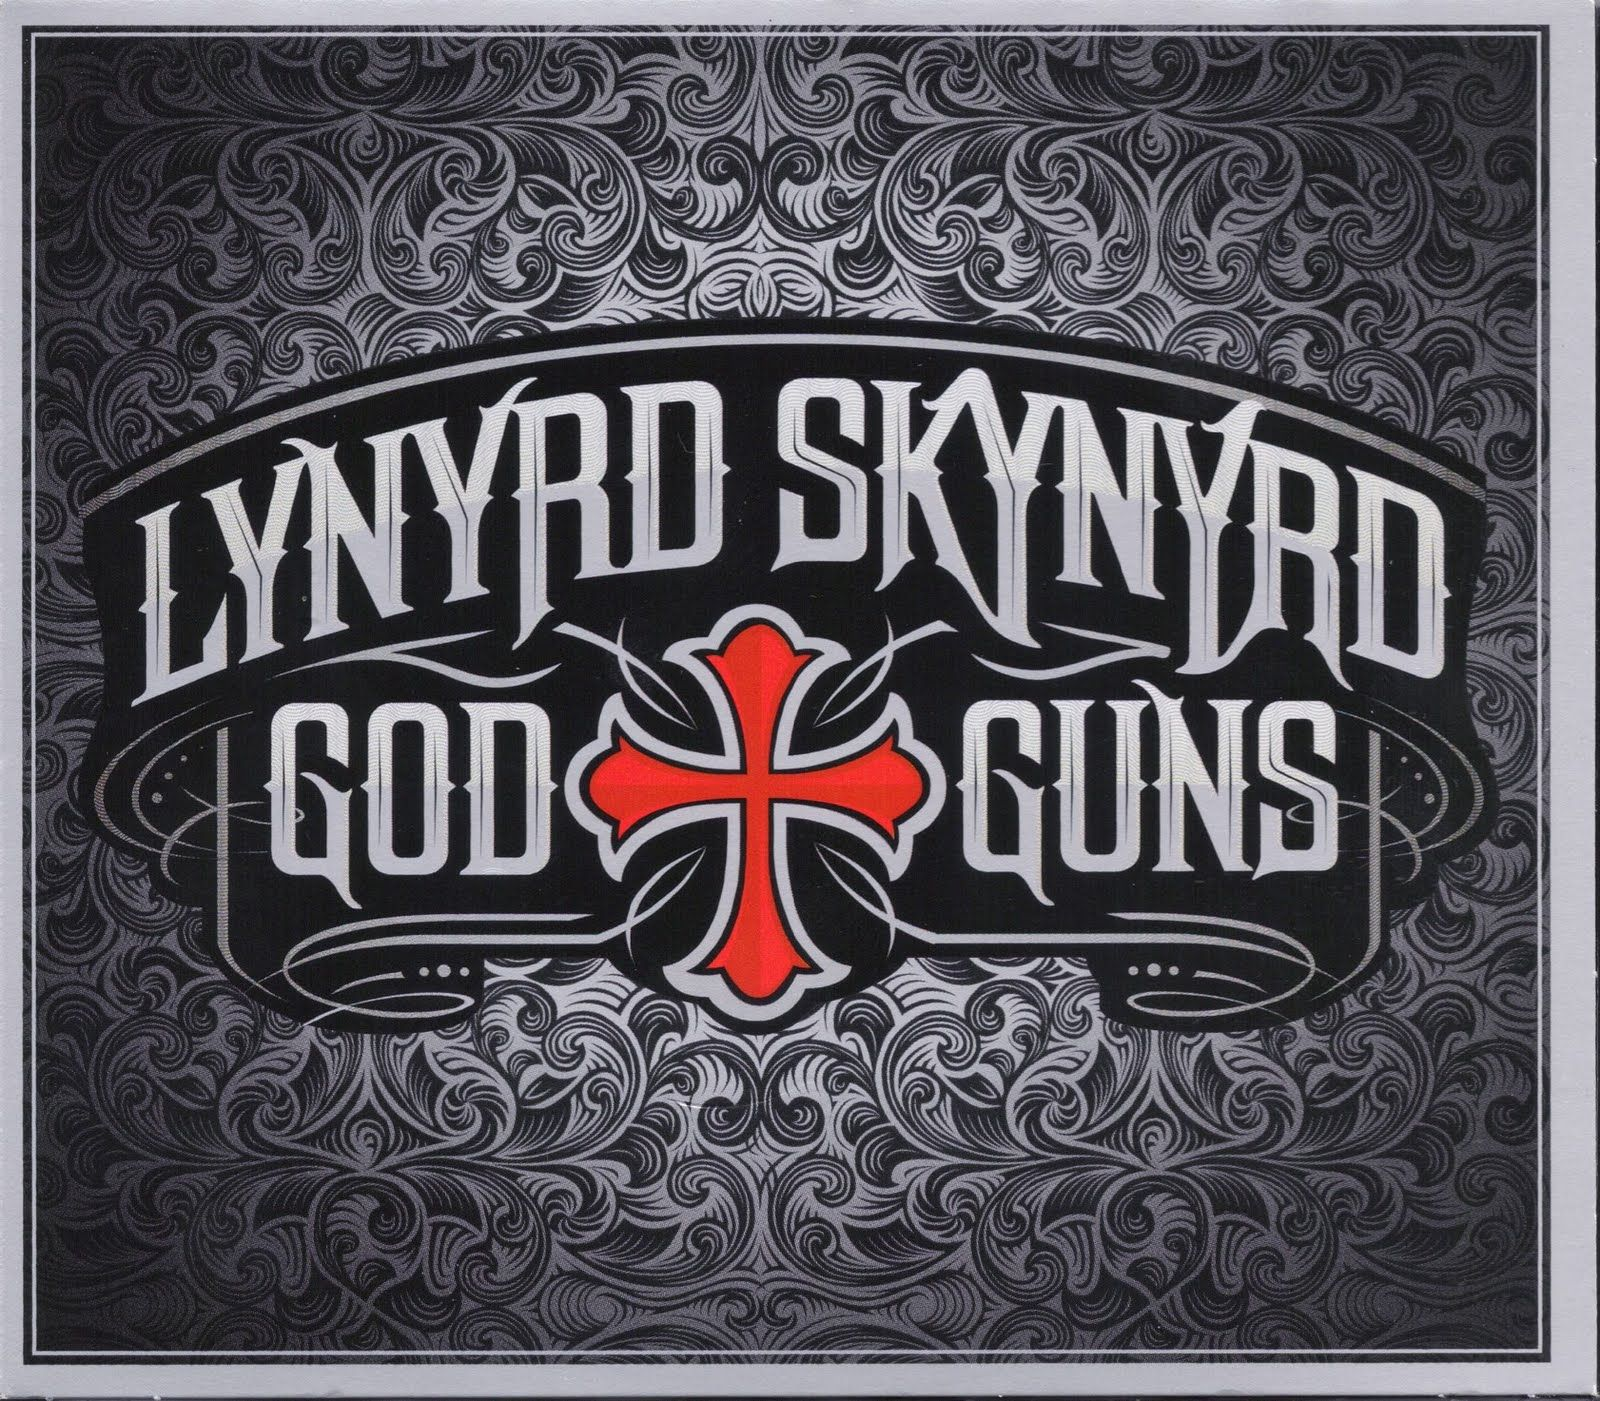 Lynyrd Skynyrd - God & Guns album cover